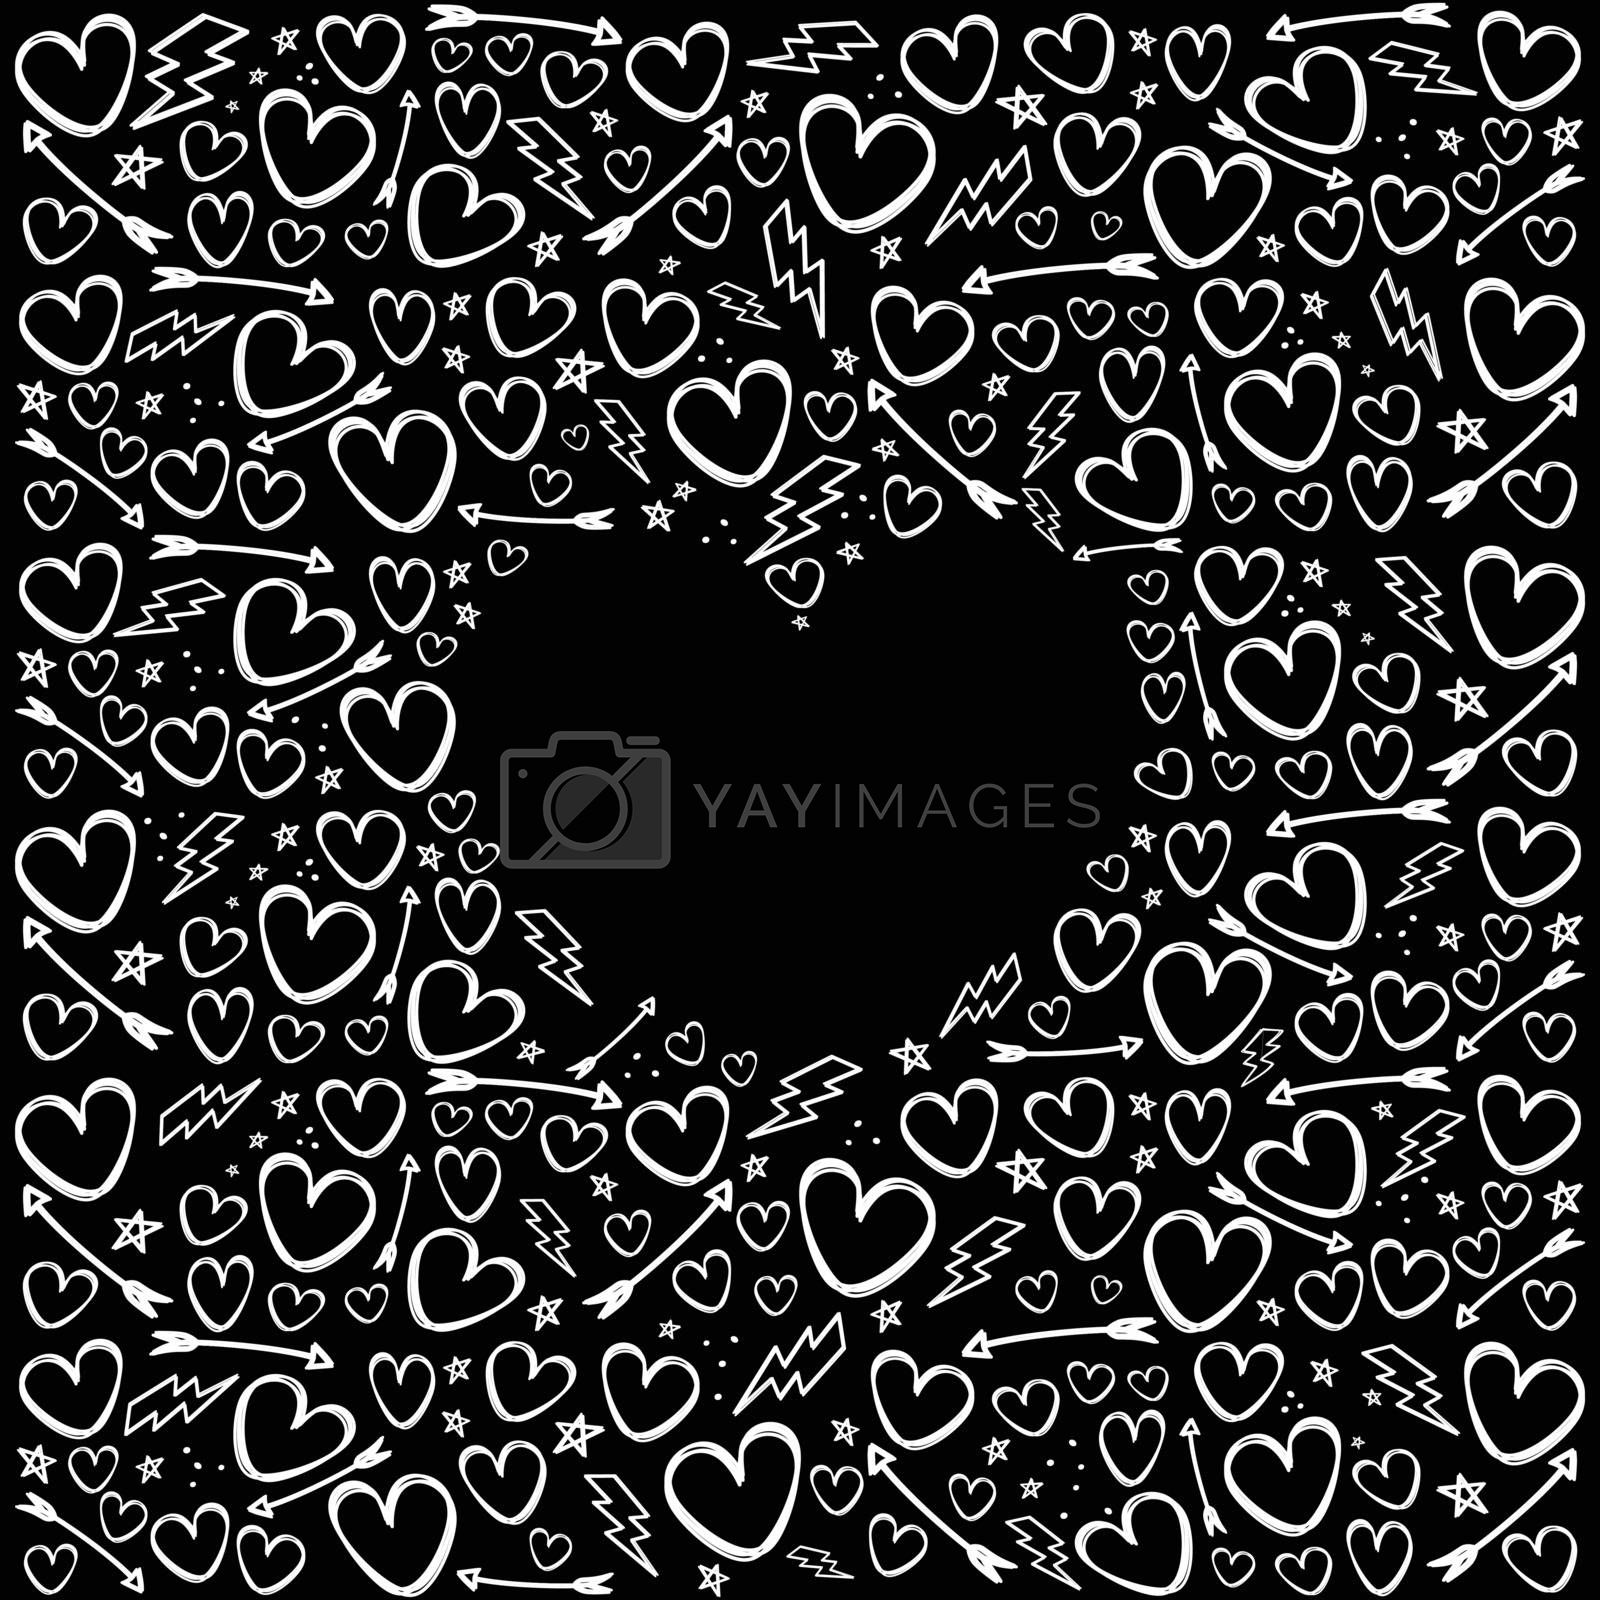 romance theme vanlentines day vector art illustration